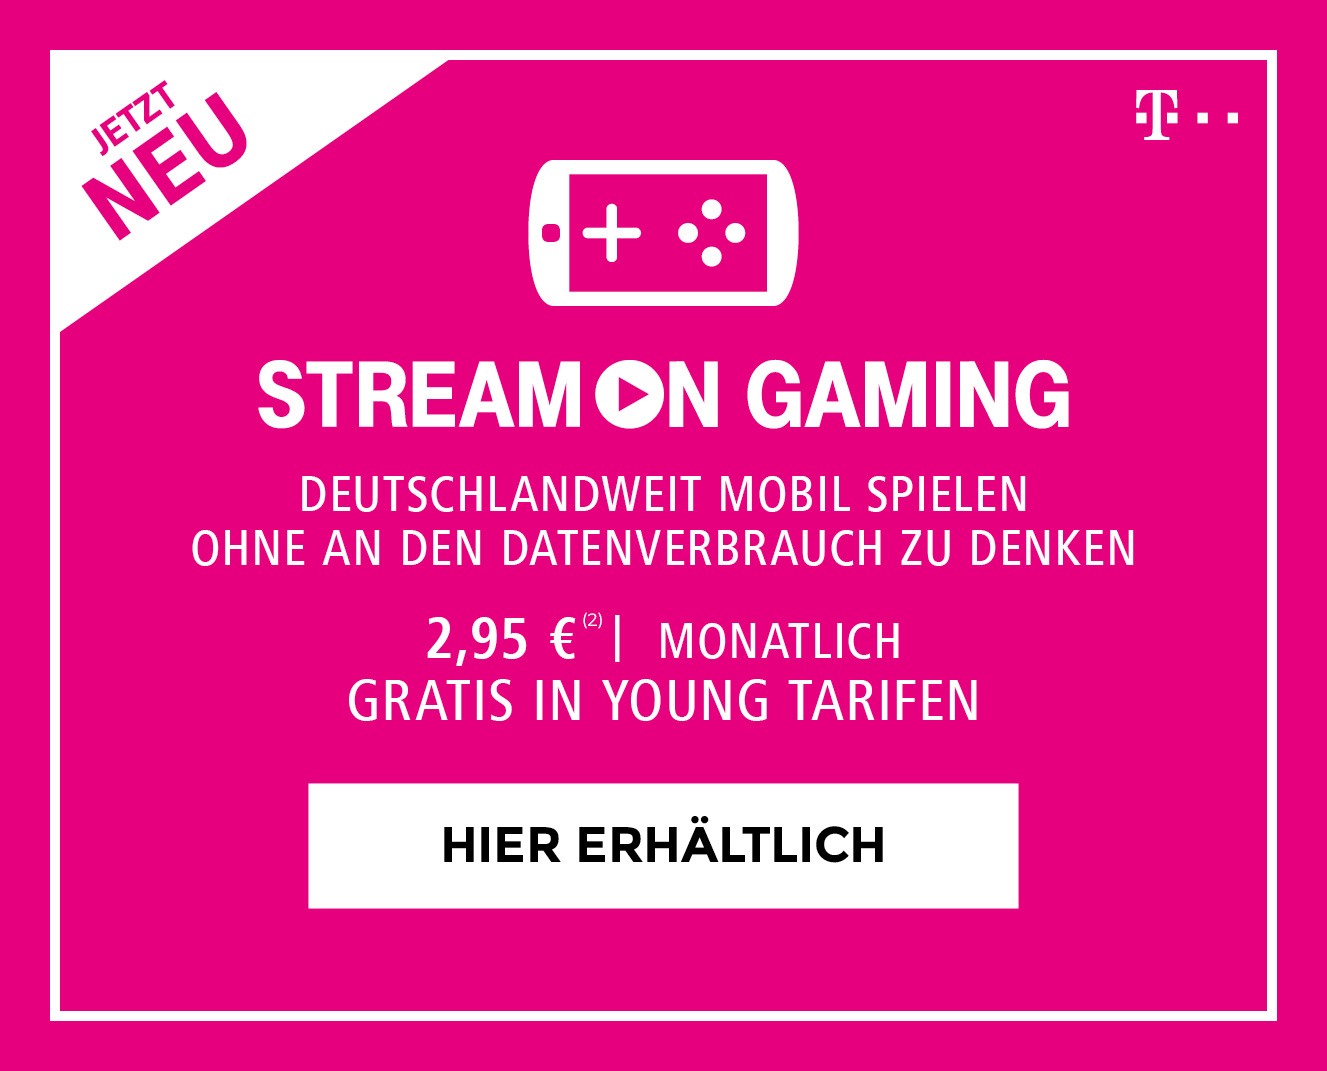 Telekom StreamOn Gaming